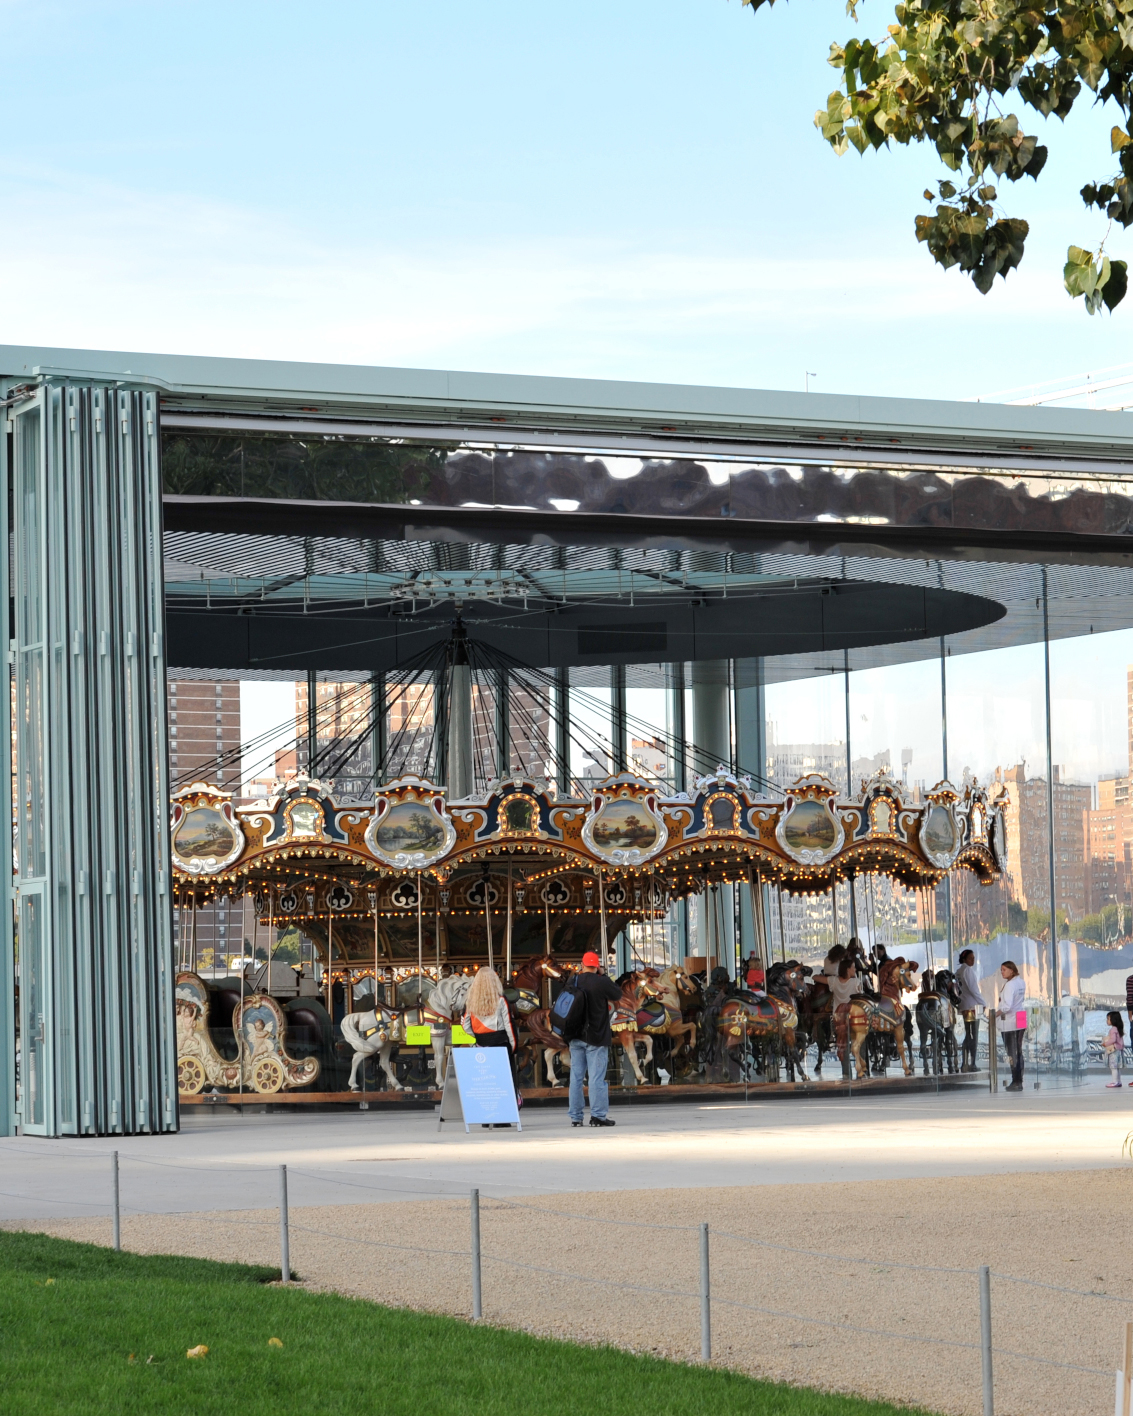 nyc-proposal-spot-brooklyn-bridge-park-janes-carousel-1114.jpg